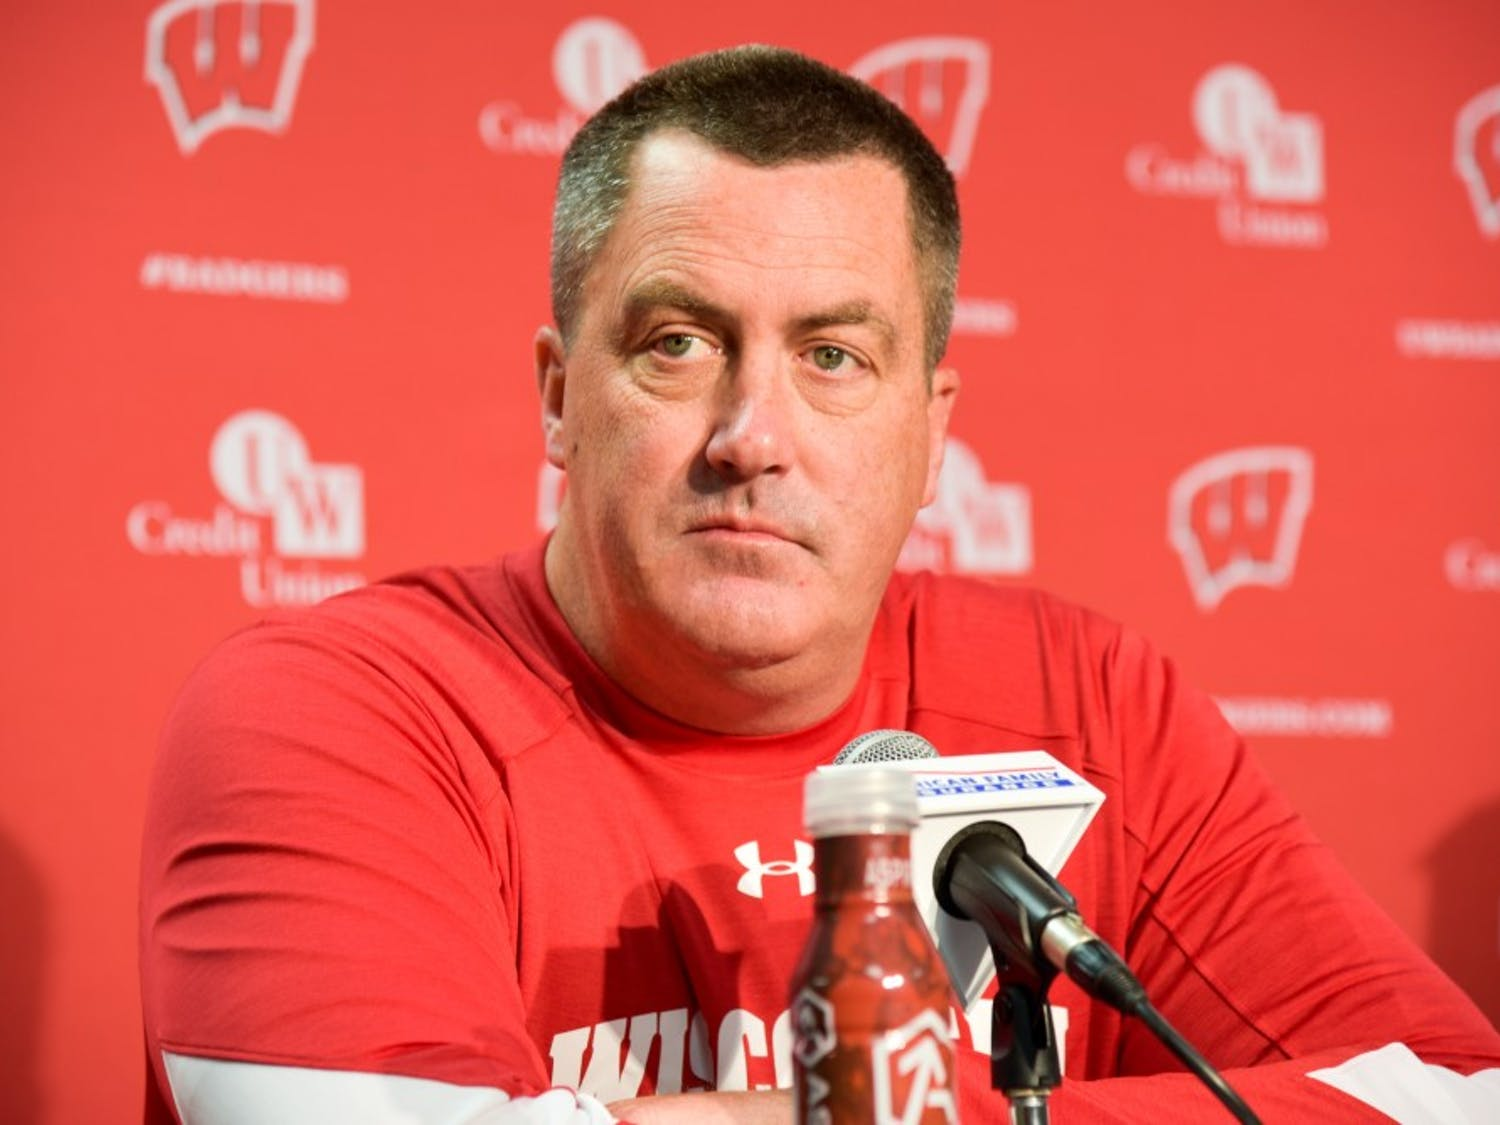 Wisconsin head football coach Paul Chryst talked about the start of Big Ten conference play at a press conference Monday.